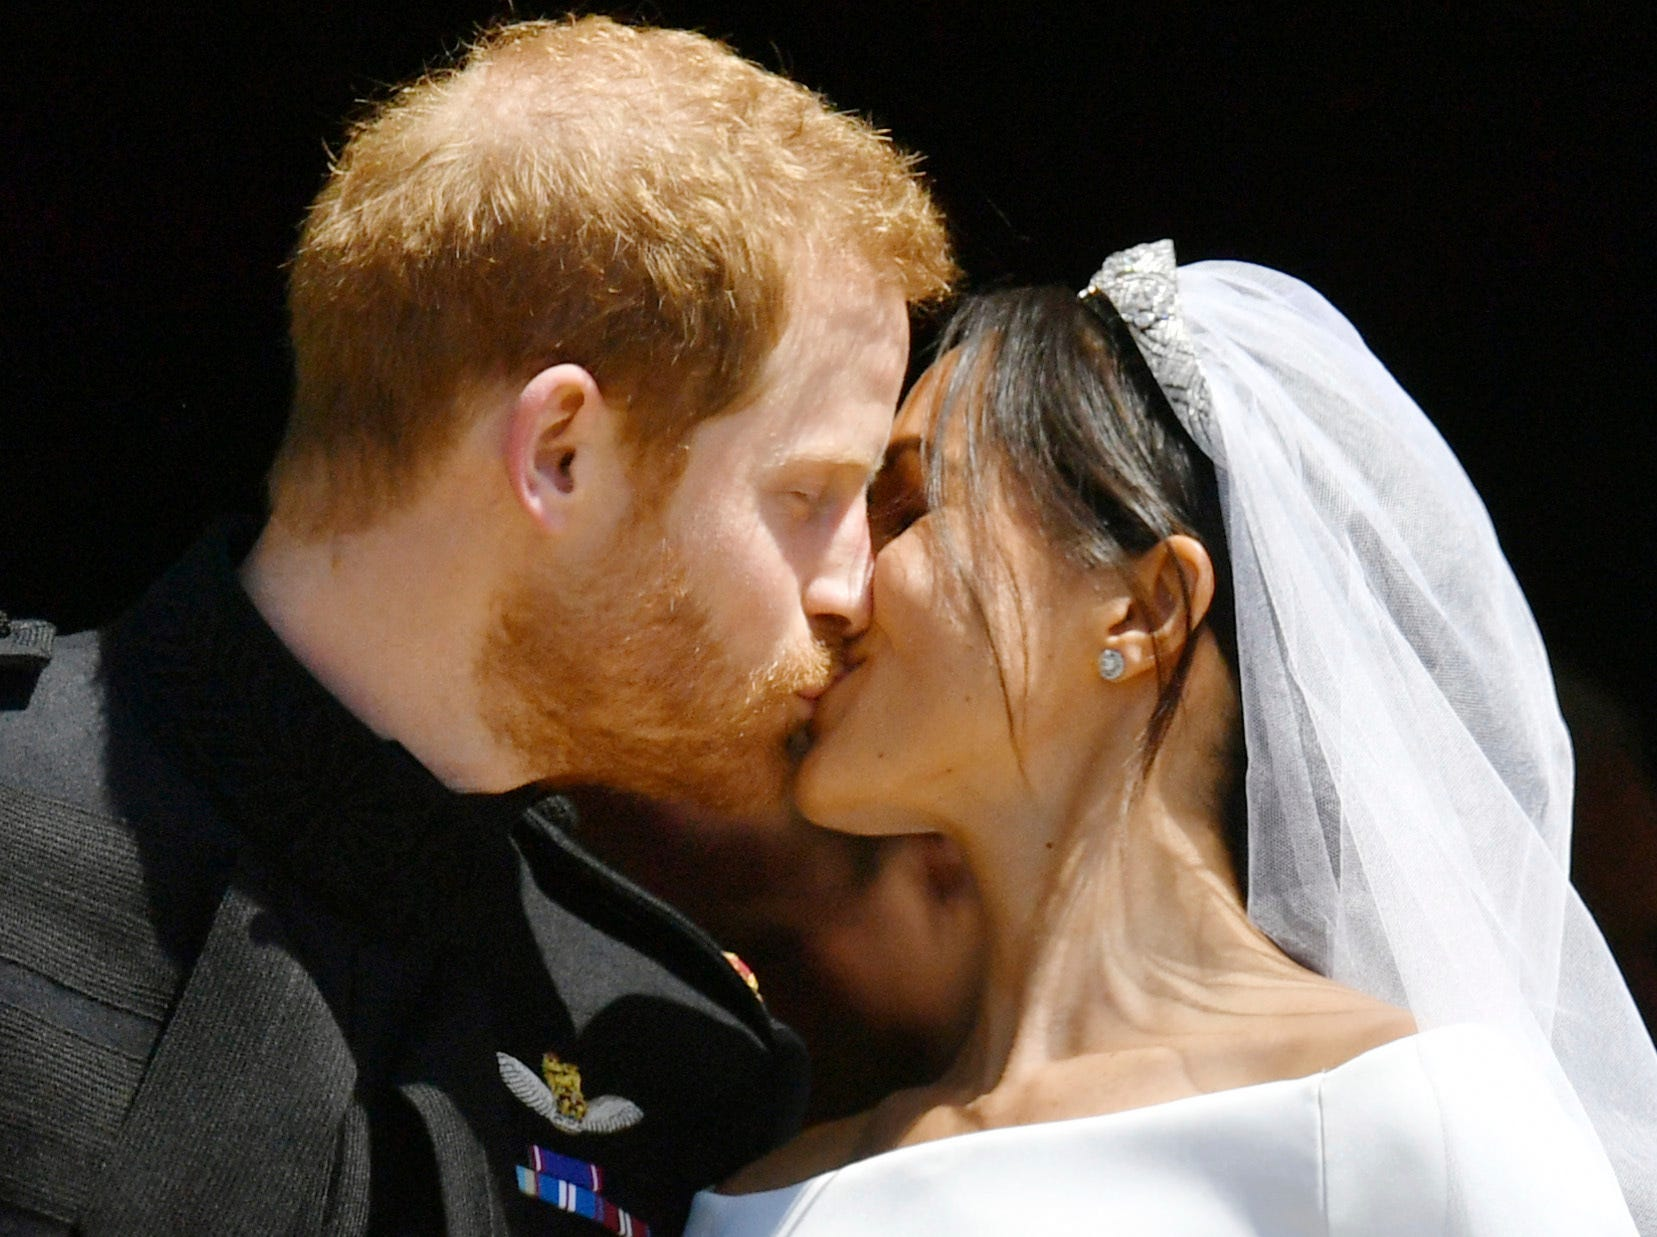 May 19: Prince Harry and Meghan Markle kiss on the steps of St. George's Chapel in Windsor Castle after their wedding ceremony.